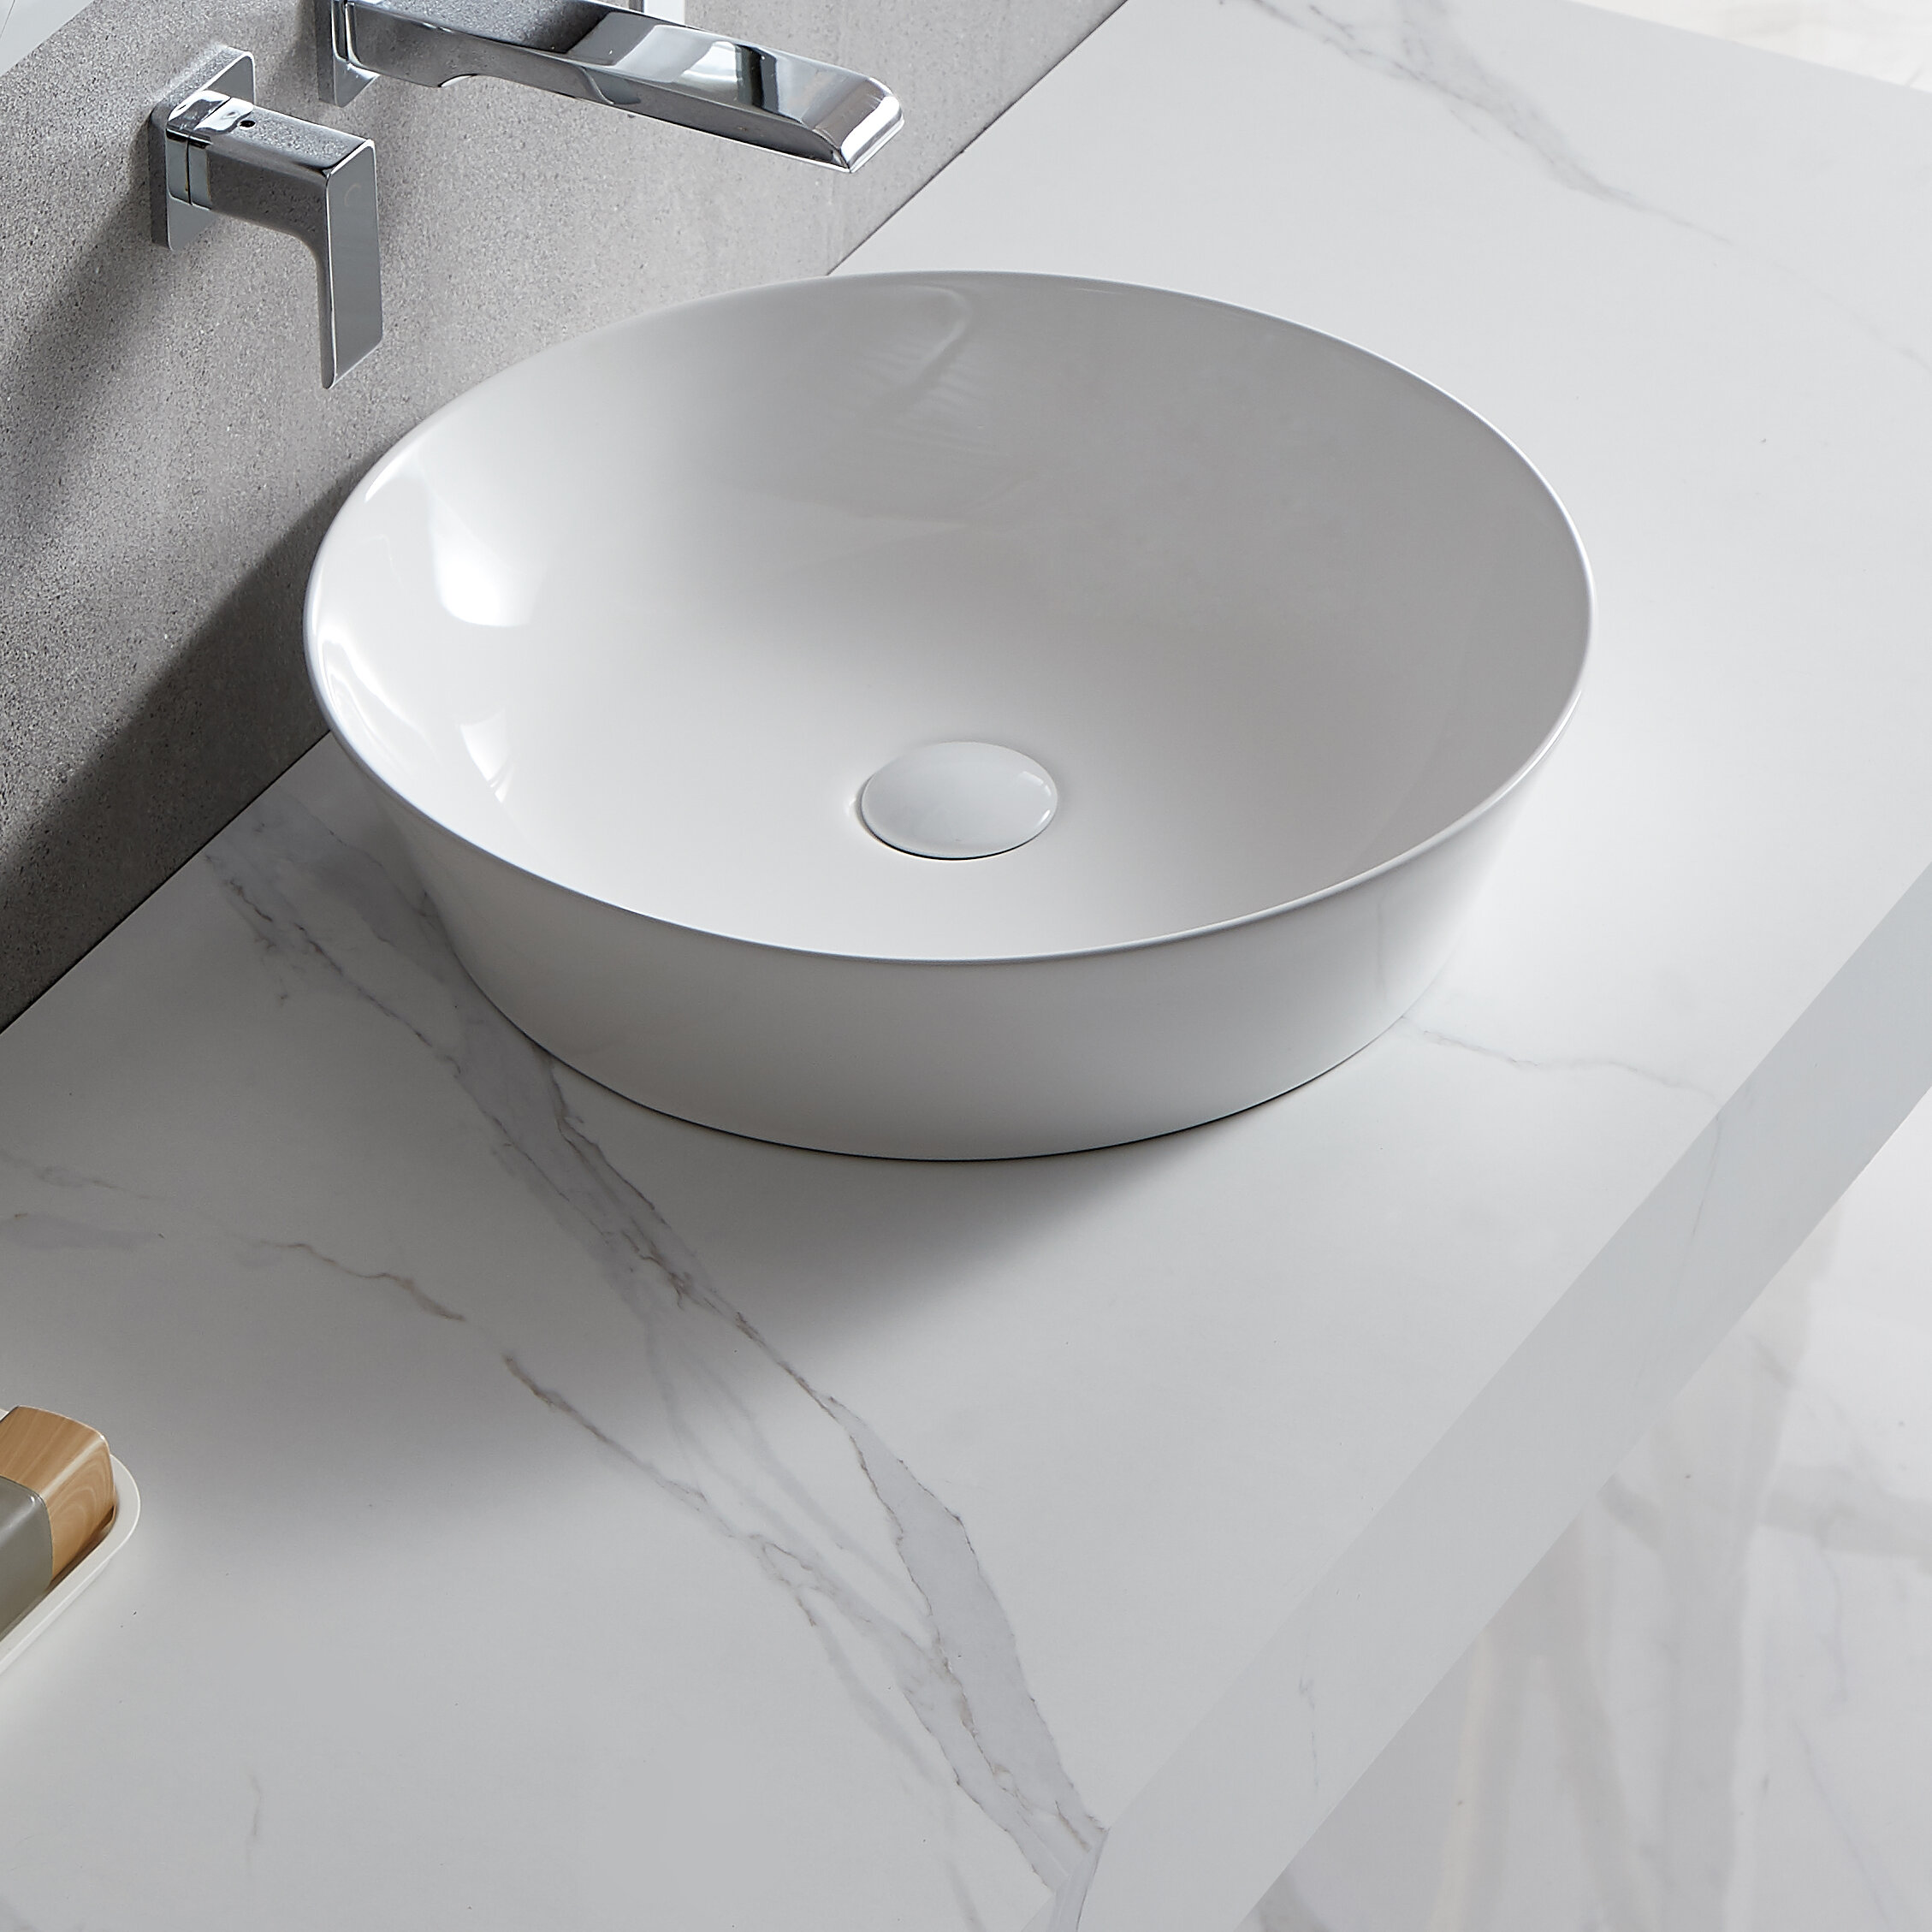 Jingzhong Llc White Ceramic Circular Vessel Bathroom Sink Wayfair